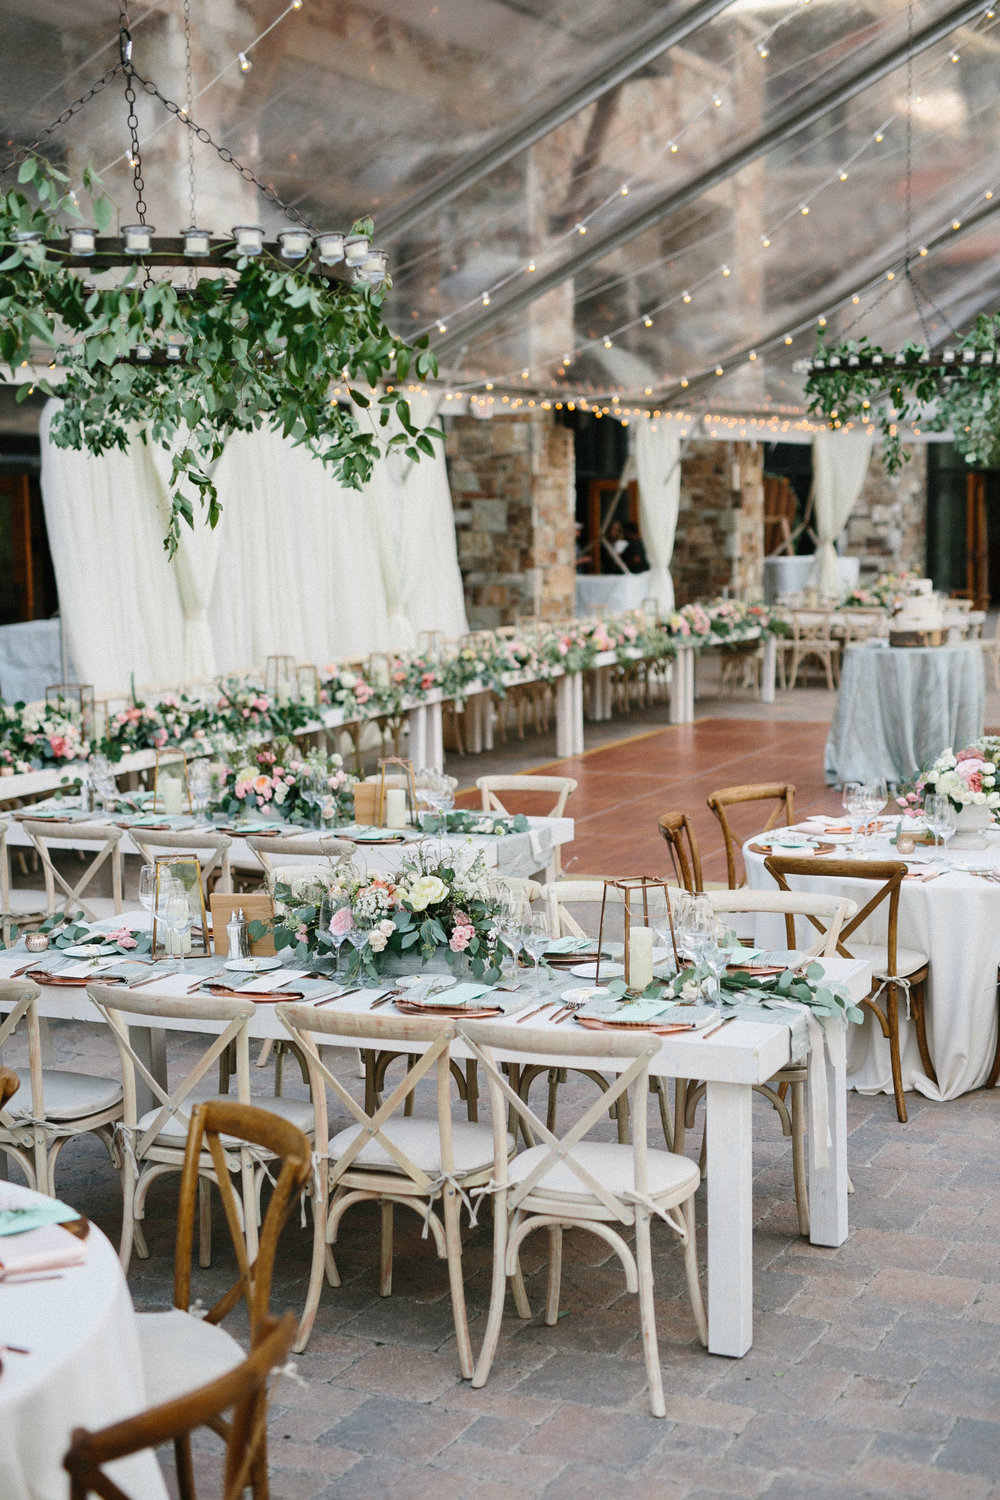 Summer Wedding at St. Regis Deer Valley | Love is an Adventure | Blush and Rose Gold Wedding | Michelle Leo Events | Utah Event Planner and Designer | Jacque Lynn Photography